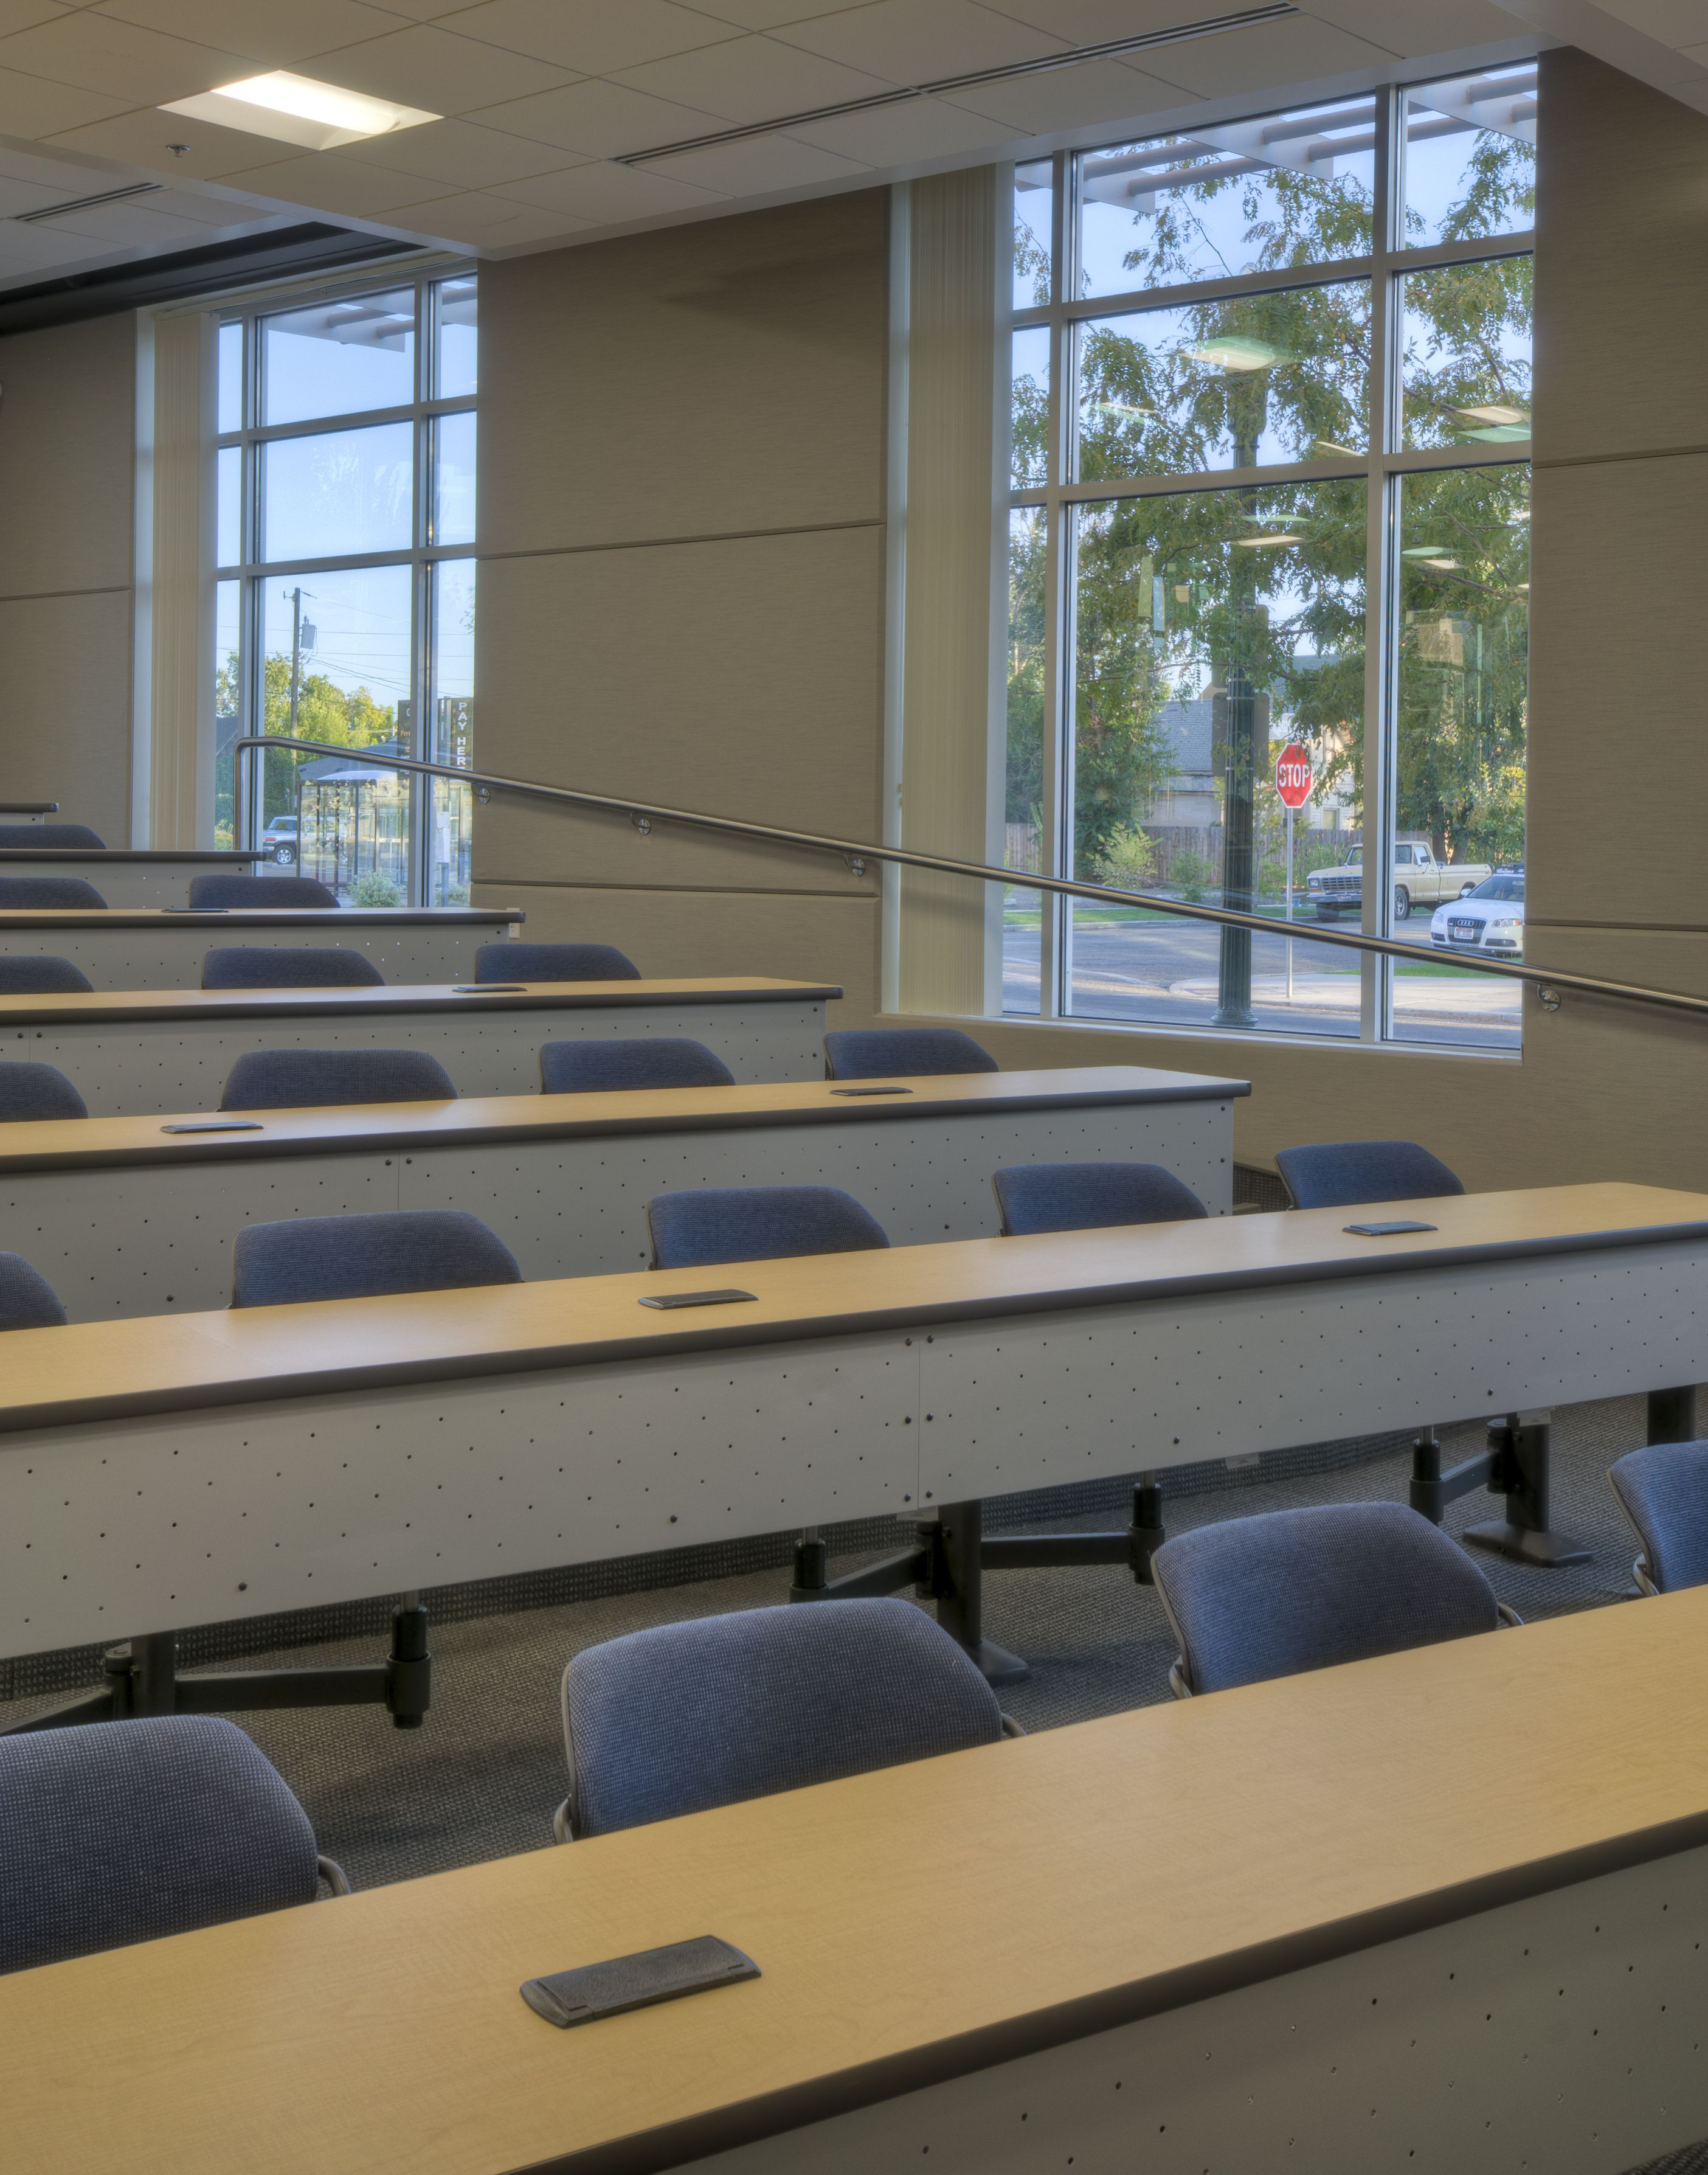 classroom concordia university school of law boise idaho the